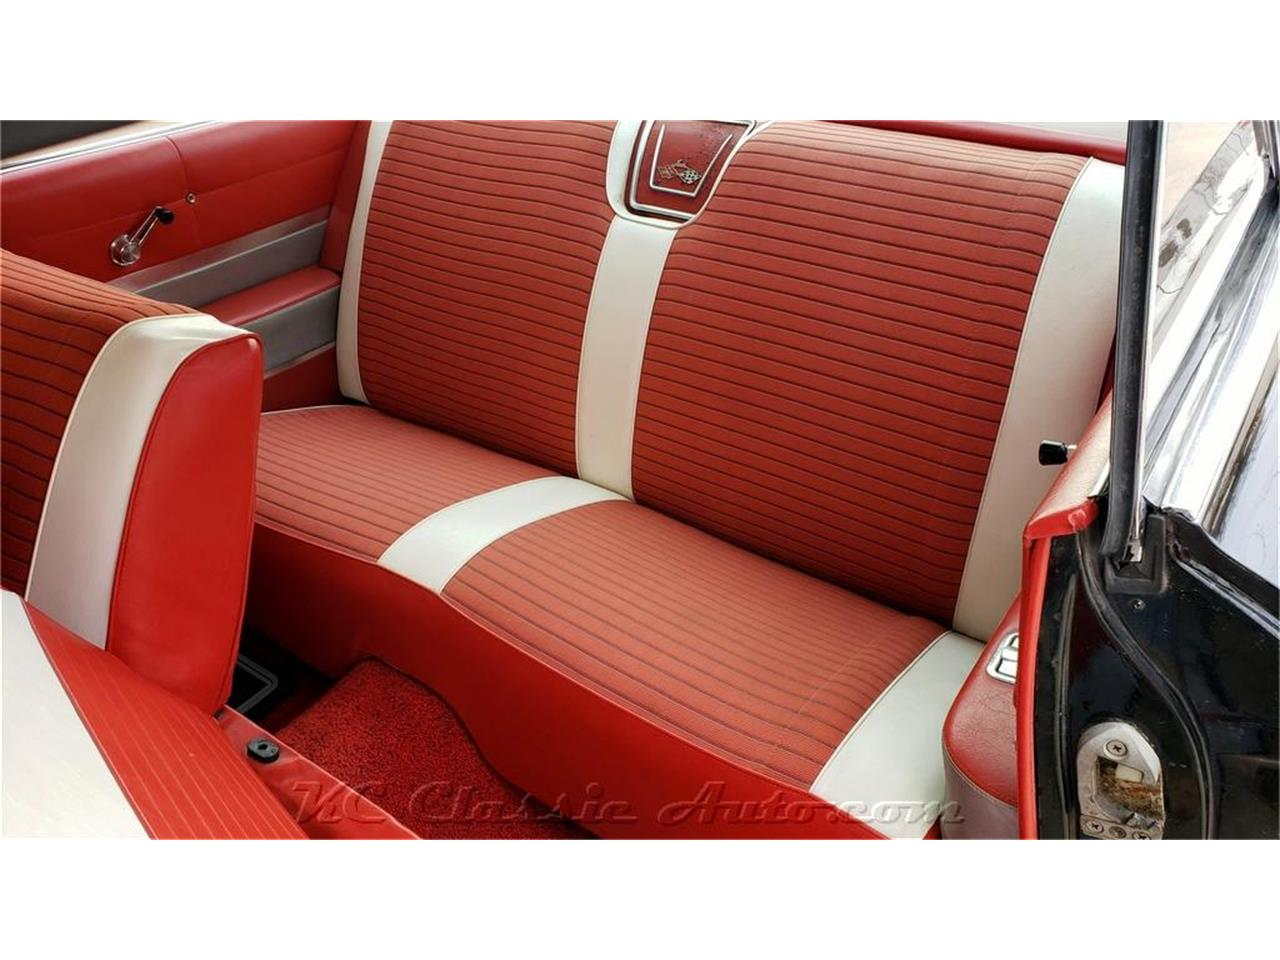 Large Picture of 1961 Chevrolet Impala located in Kansas - $44,900.00 - PUAS